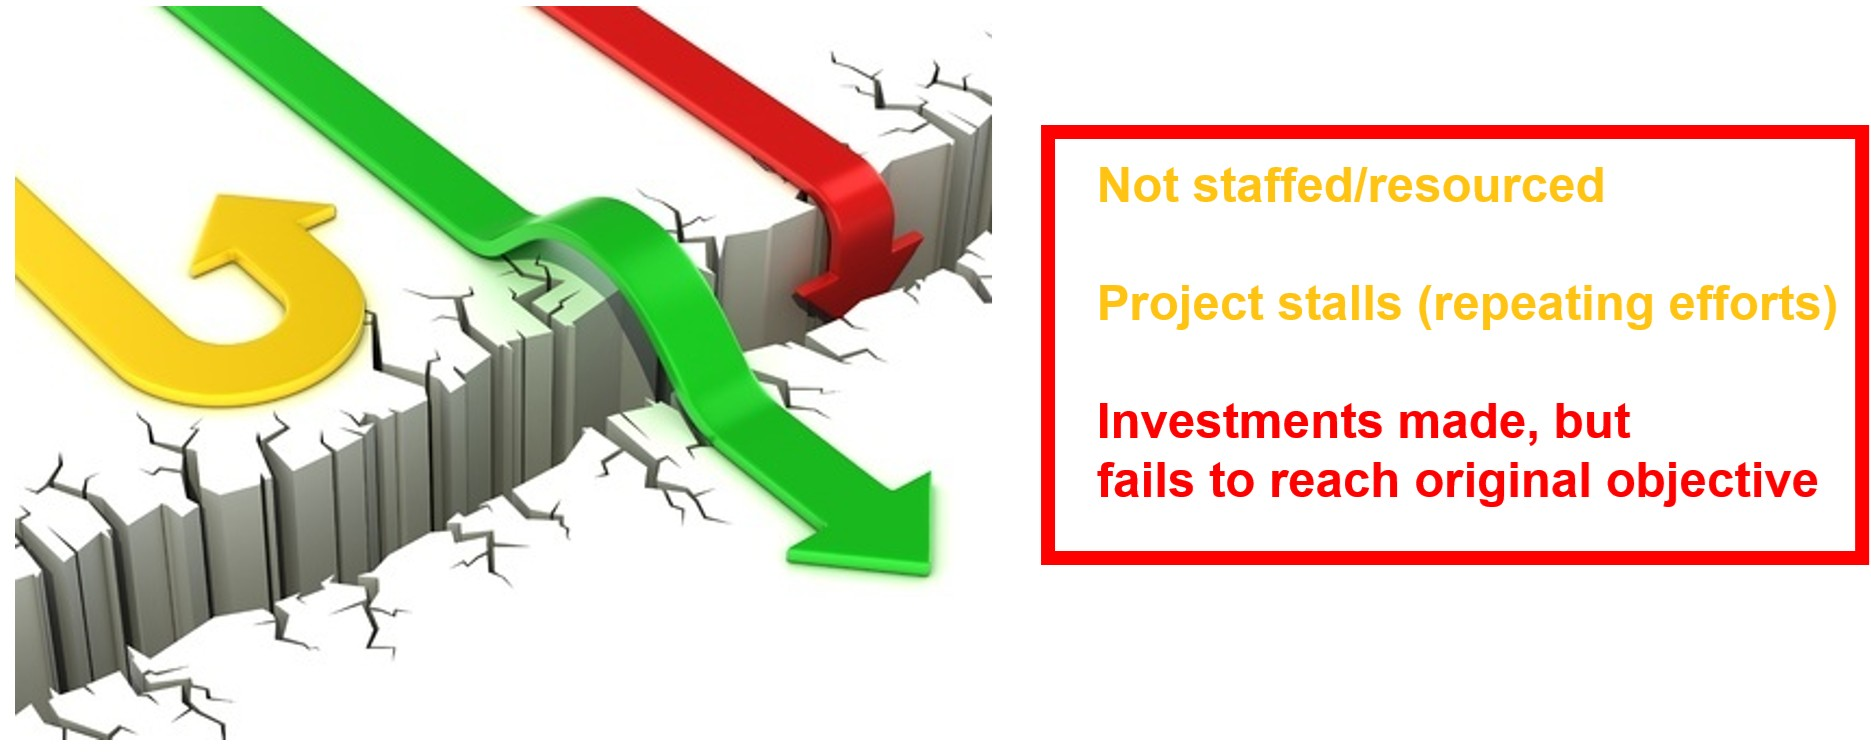 reasons for standardization efforts failing